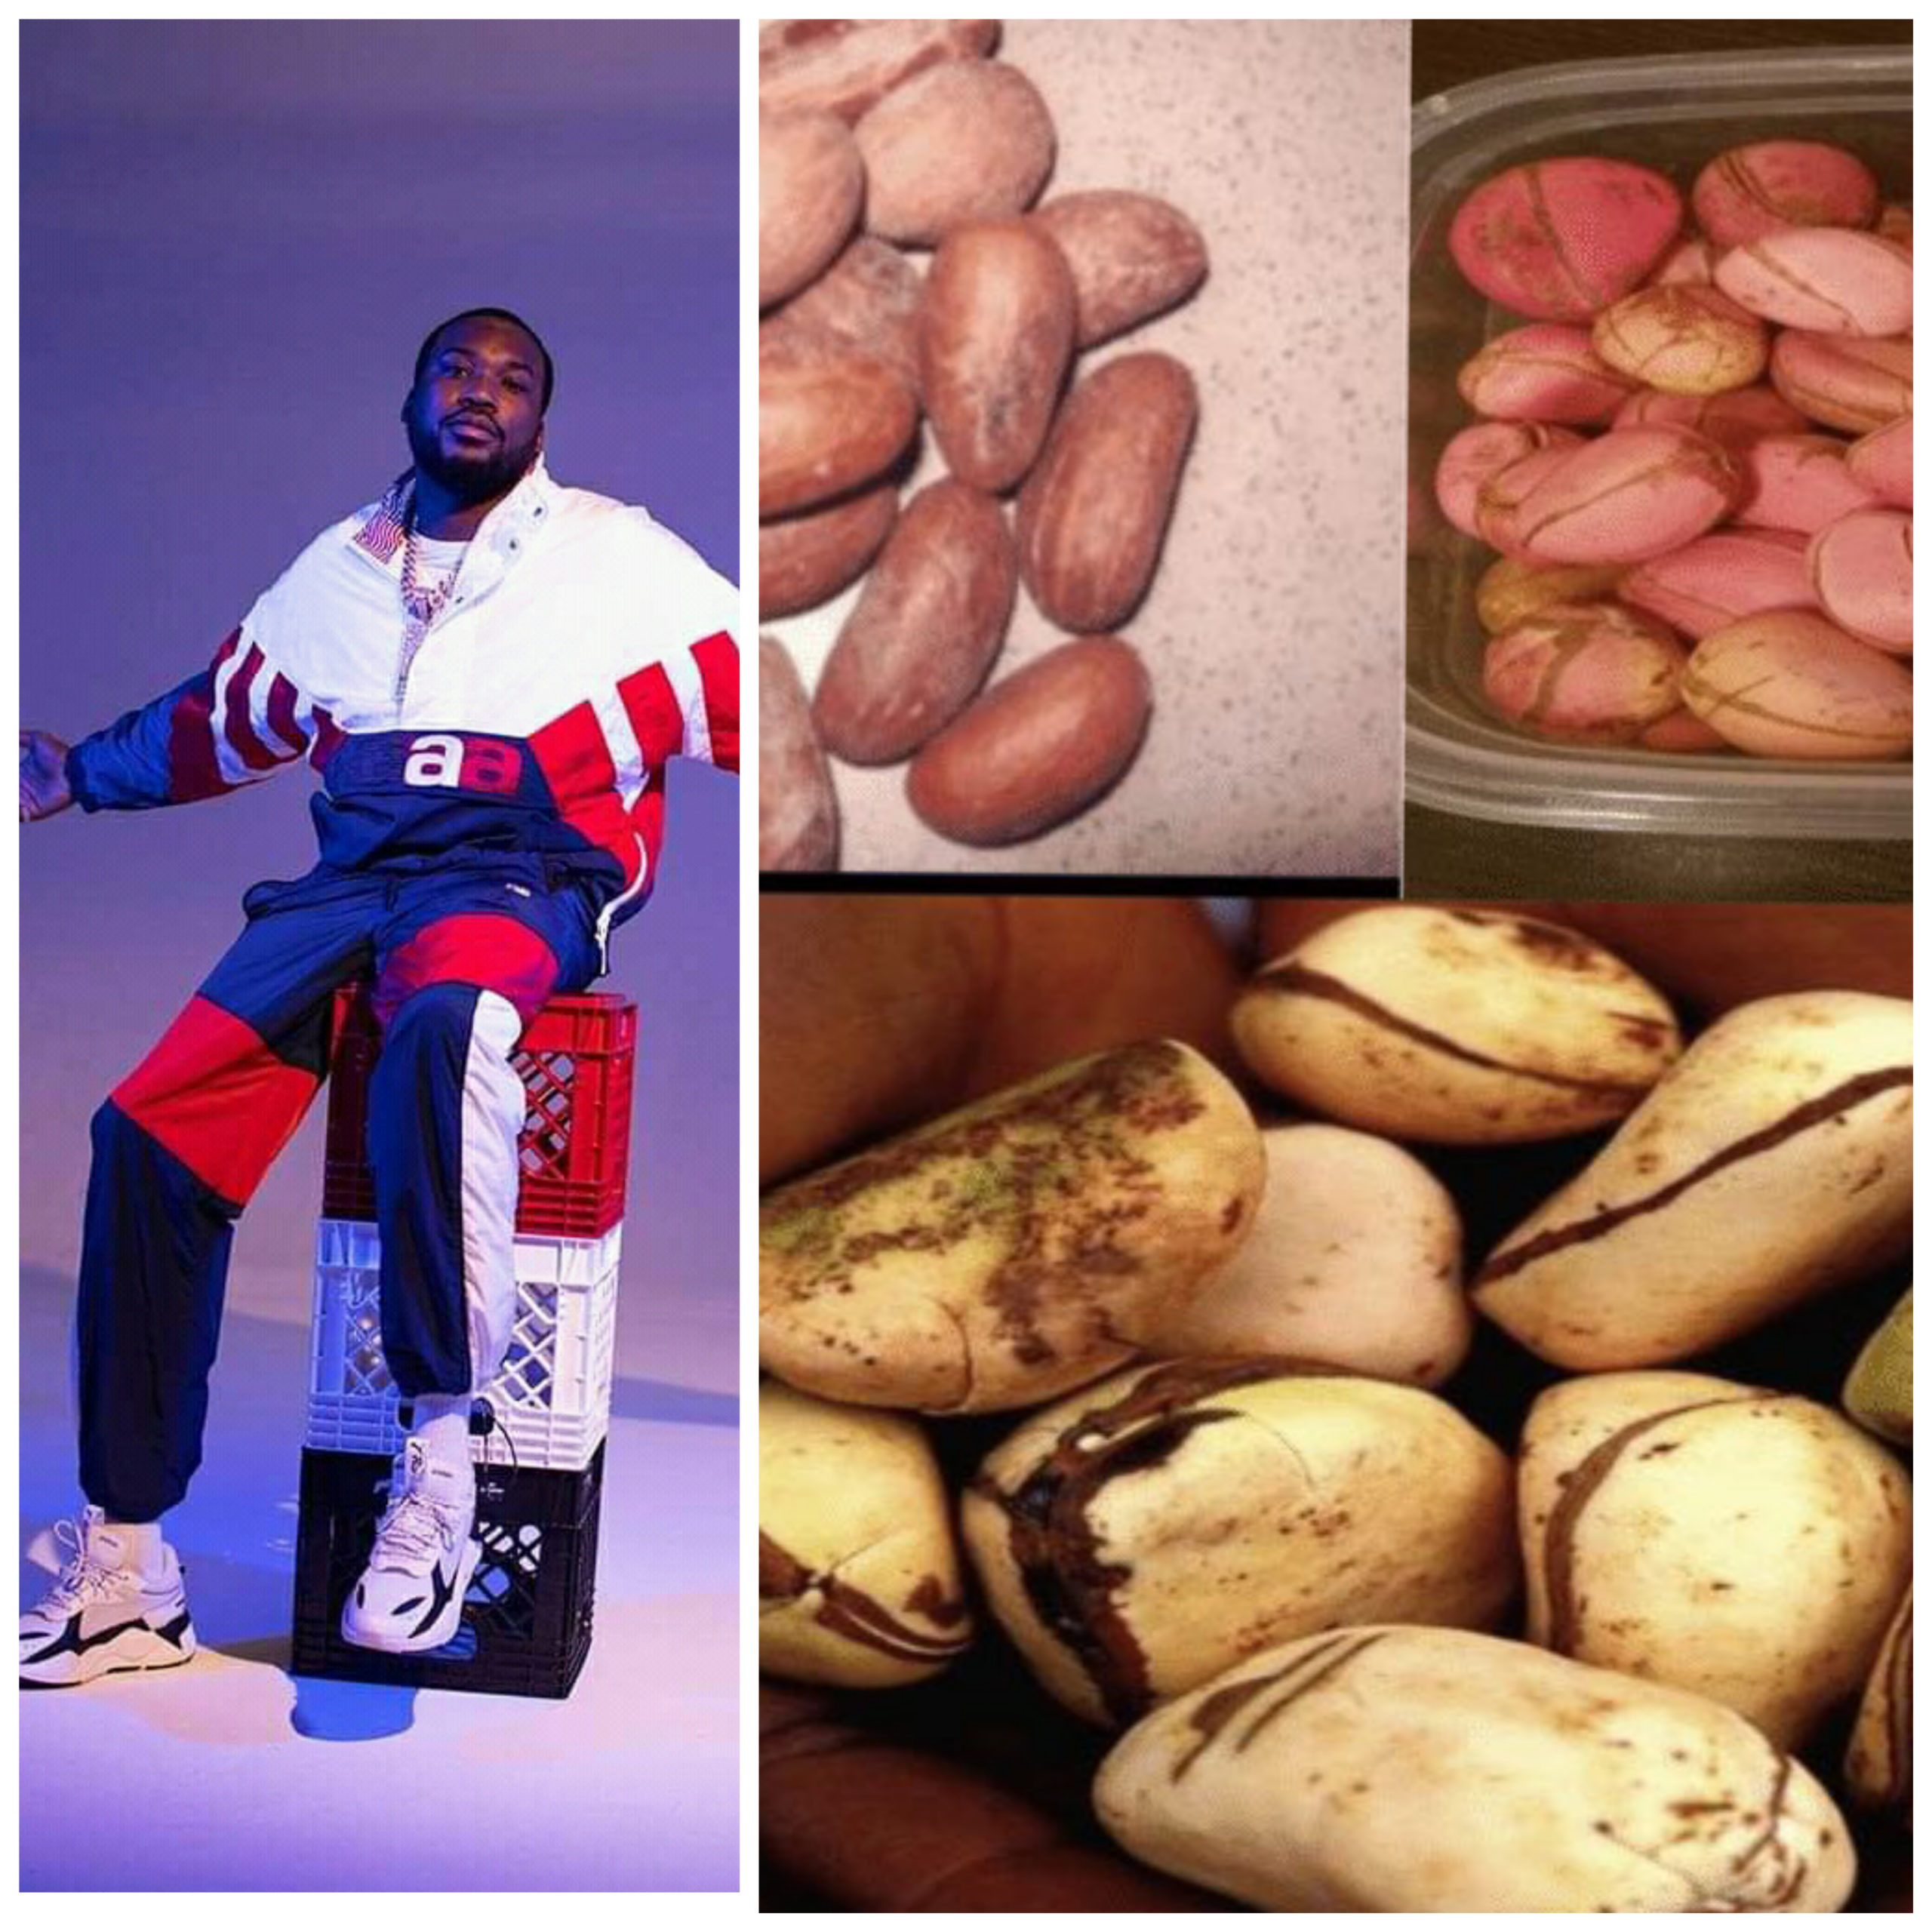 6 Miraculous Benefits Of Bitter Kola Nut That Made American Rapper Meek Mill To Endorse It.